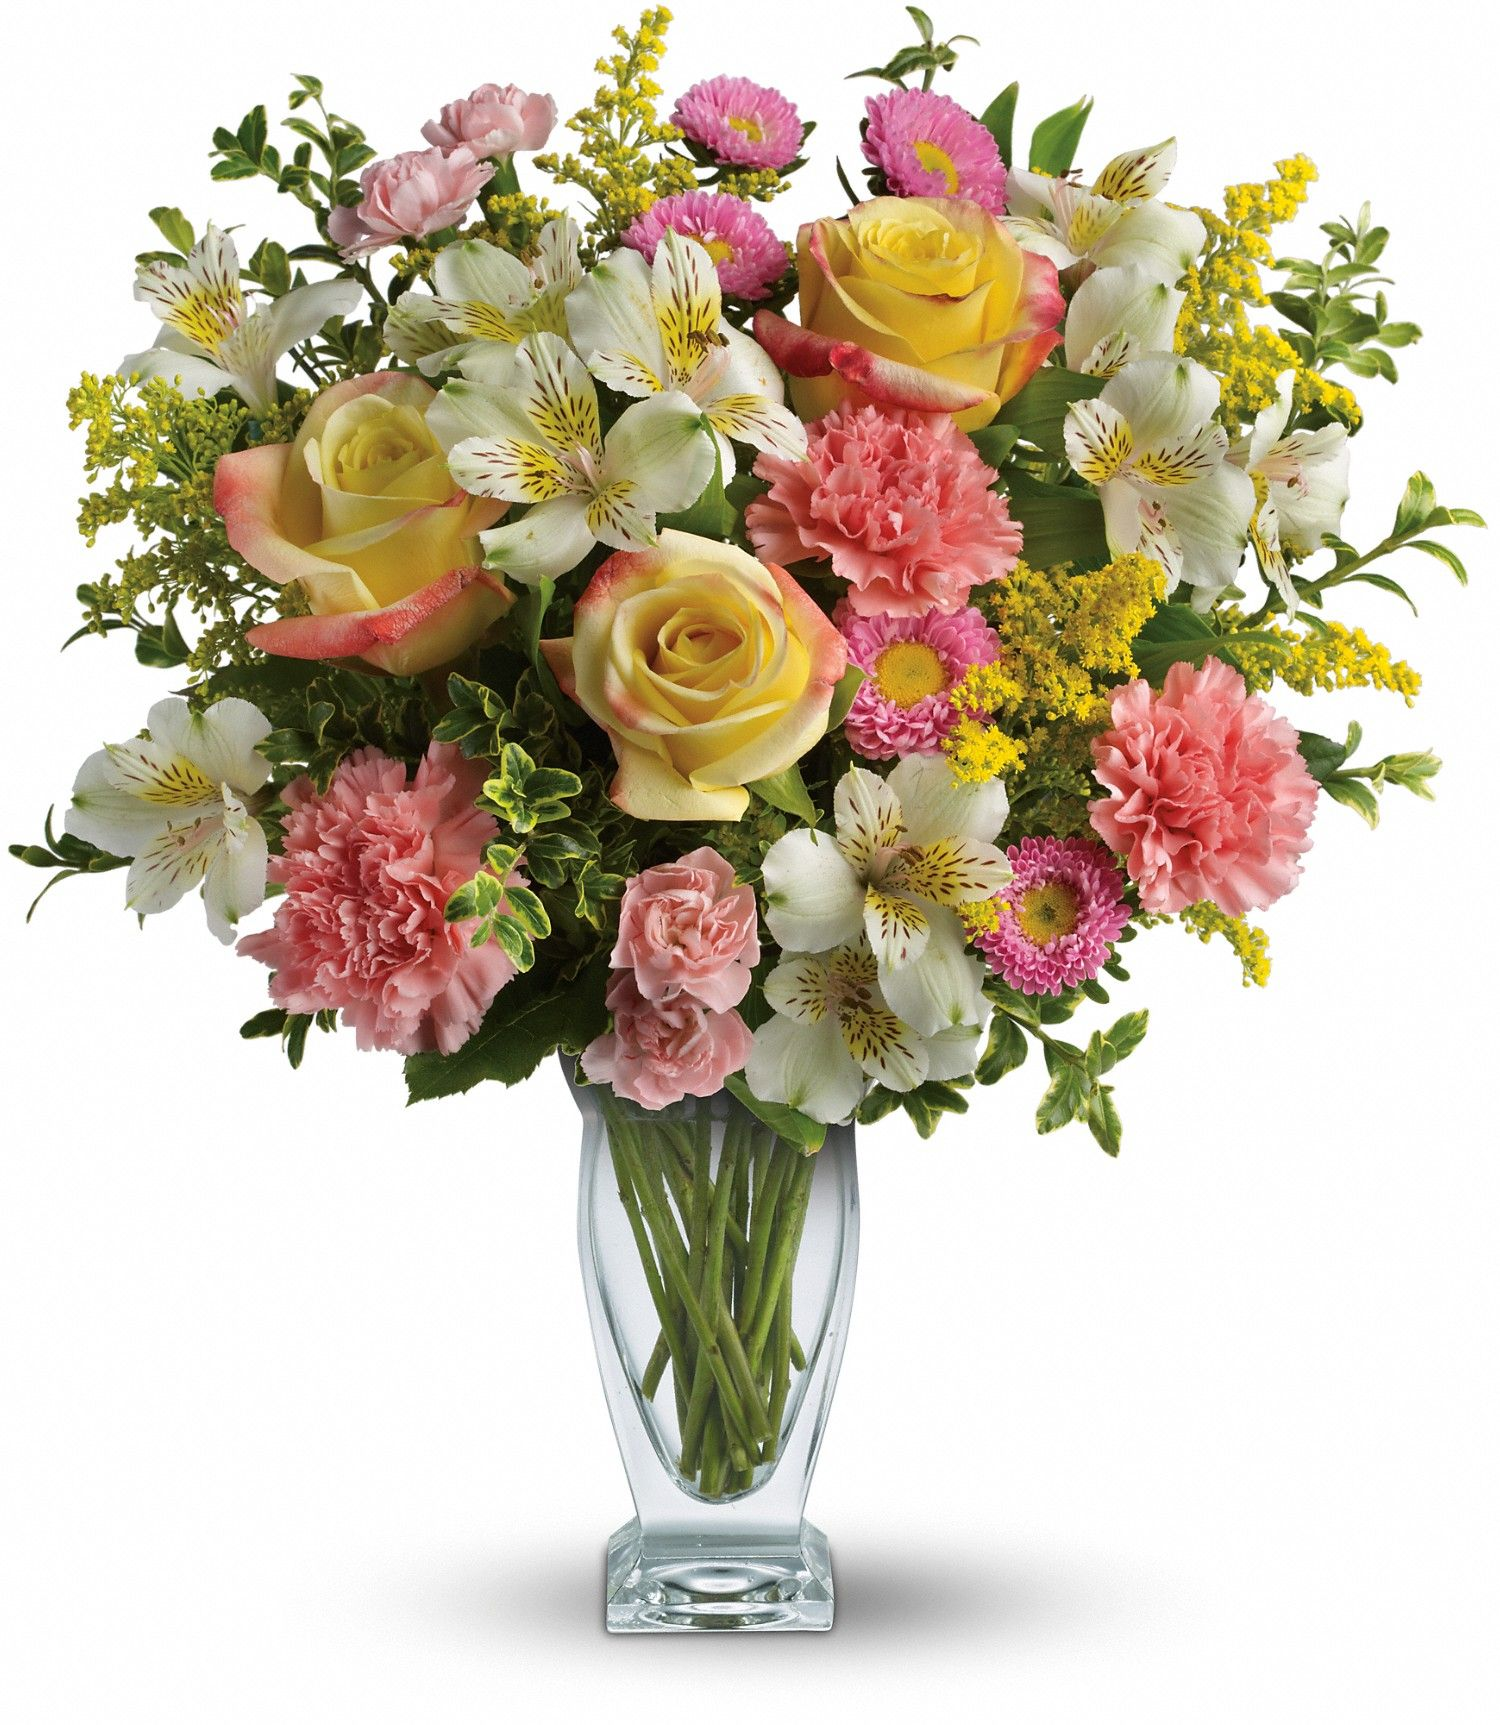 Mother S Day Bouquet A Floral Arrangement With A Mix Of Yellow